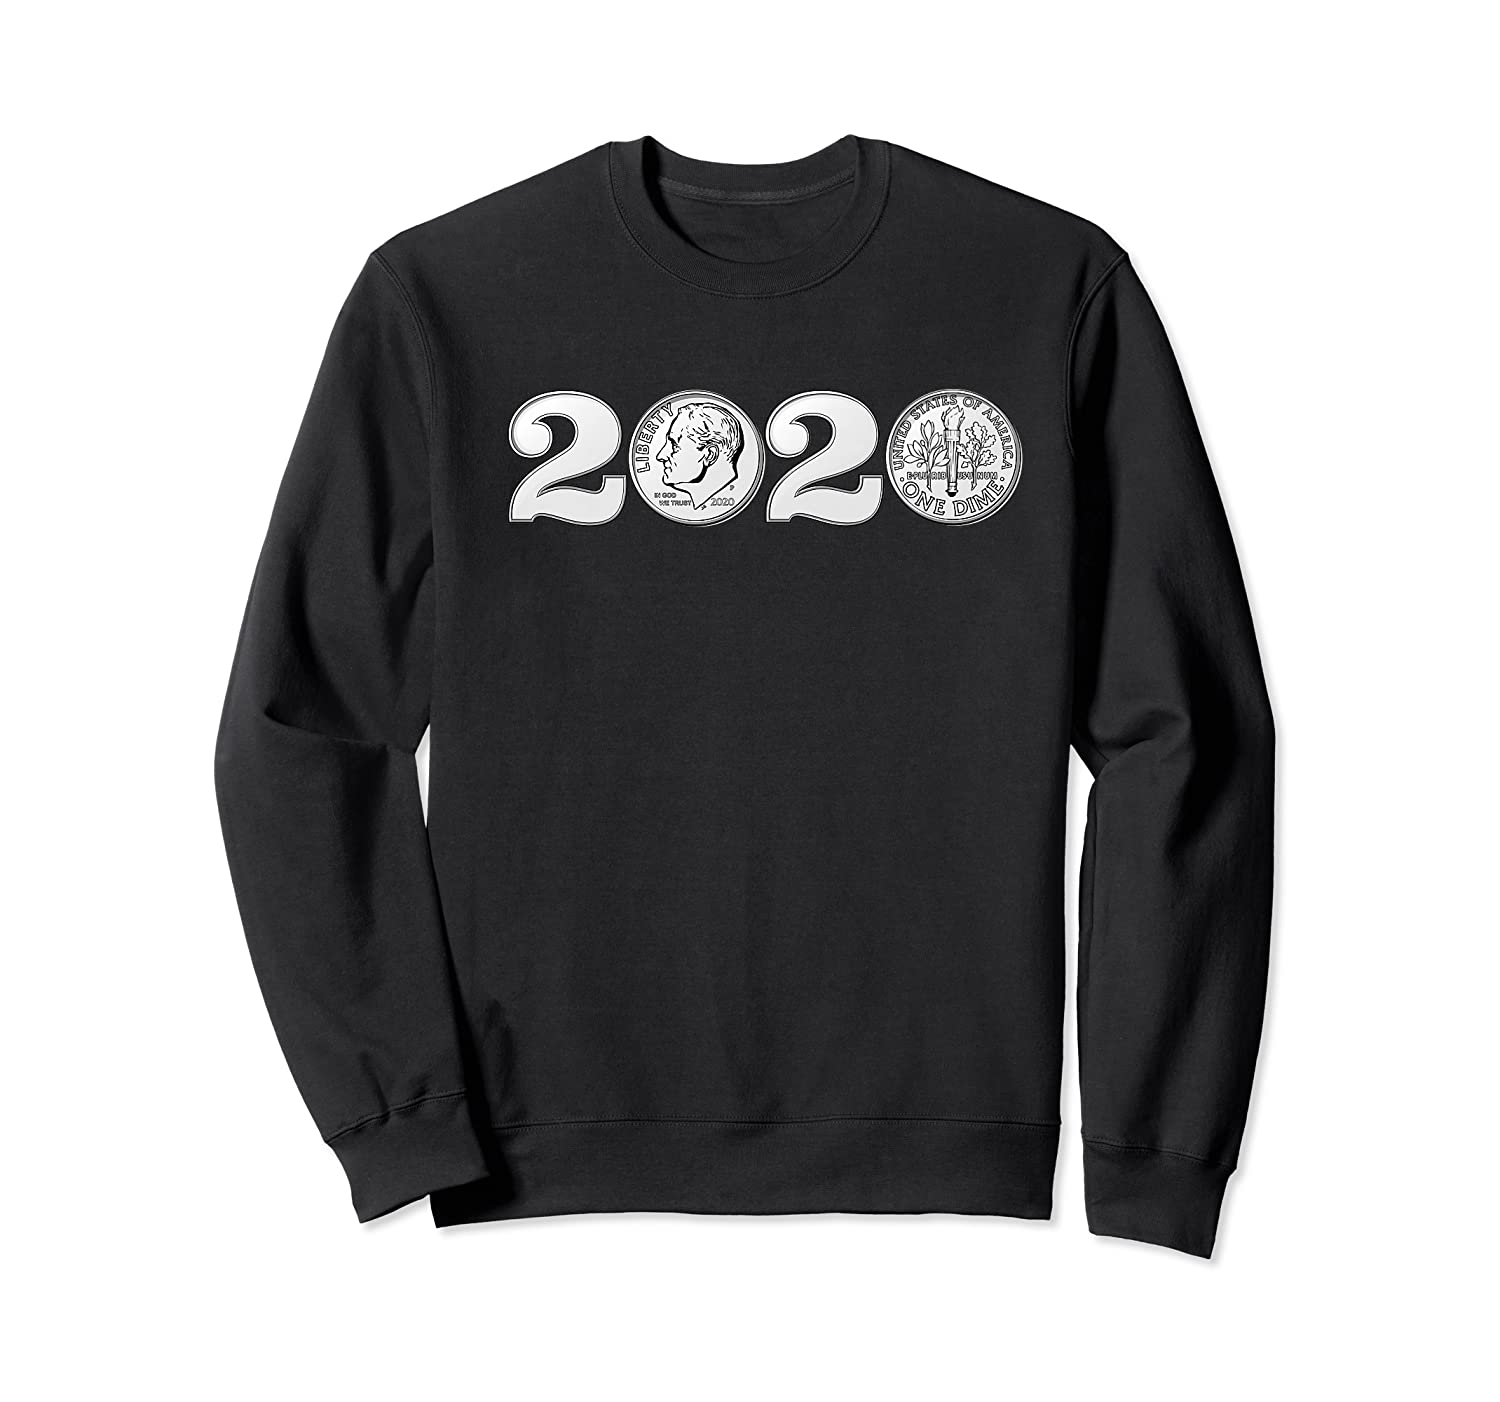 Funny T Shirts For Funny T Shirts For And  Crewneck Sweater